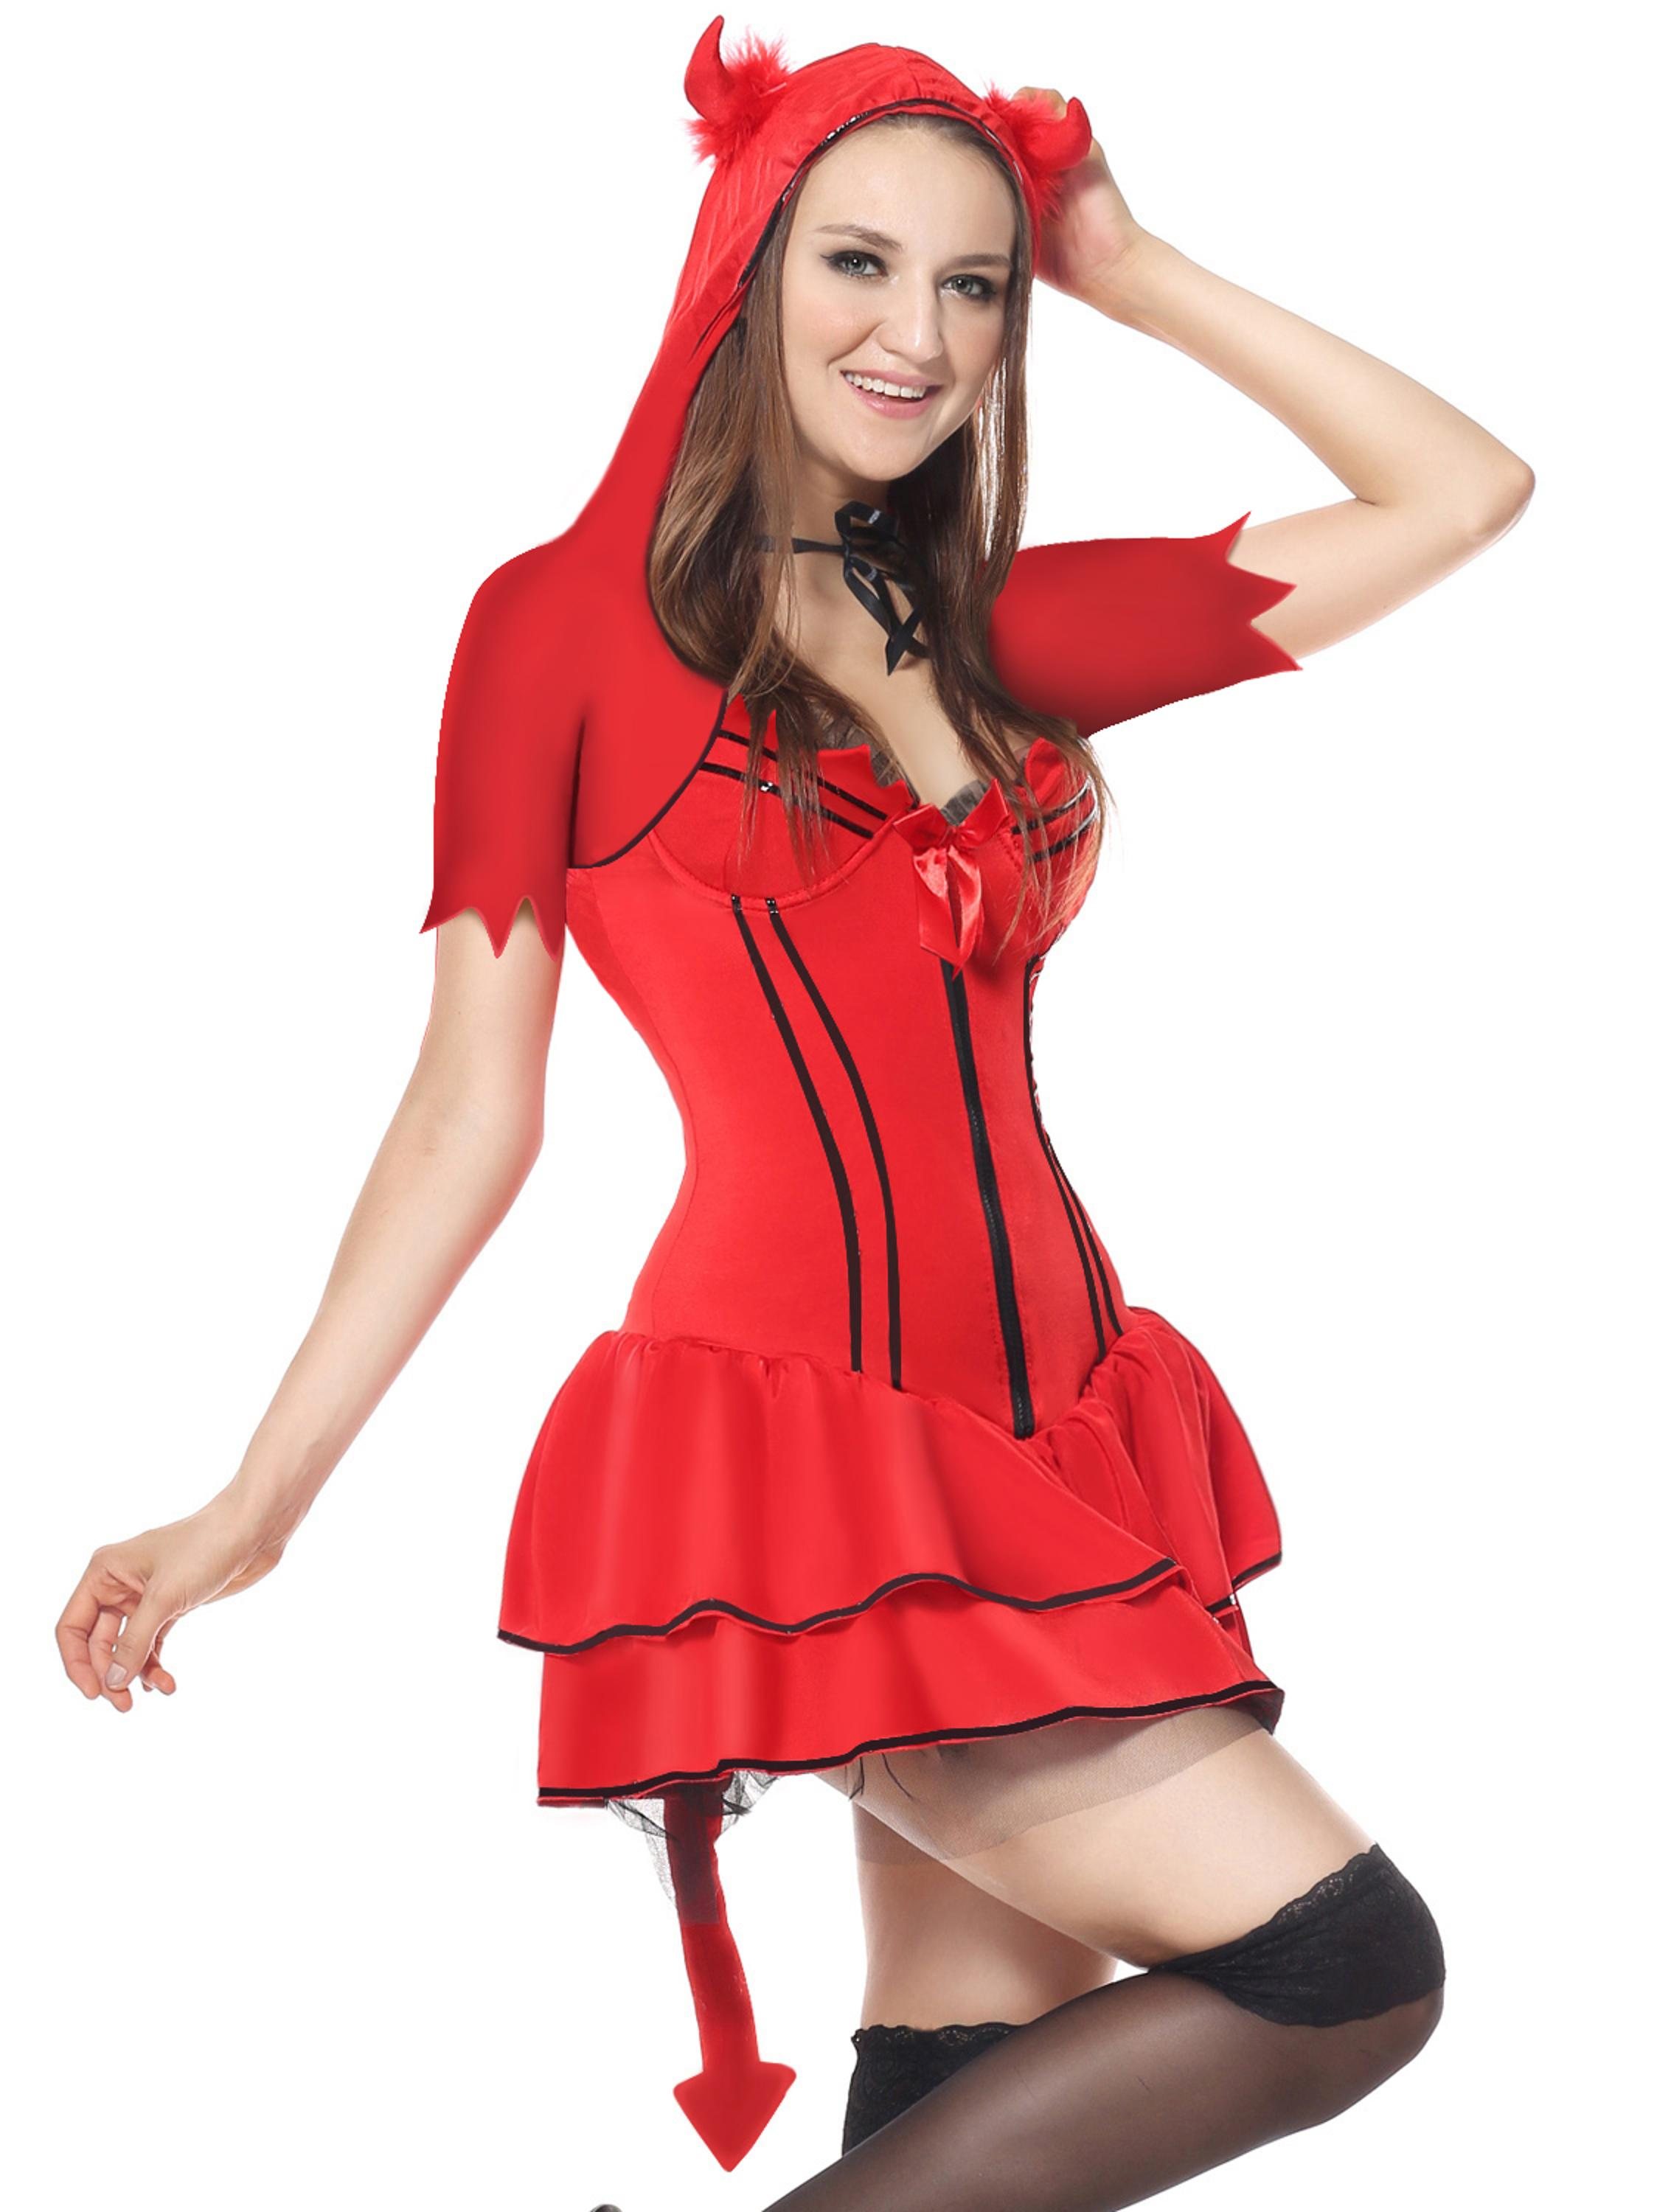 Hot Sexy Red Dress Women Halloween Devil Costume  sc 1 st  Alibaba & Hot Sexy Red Dress Women Halloween Devil Costume - Buy Red Dress ...